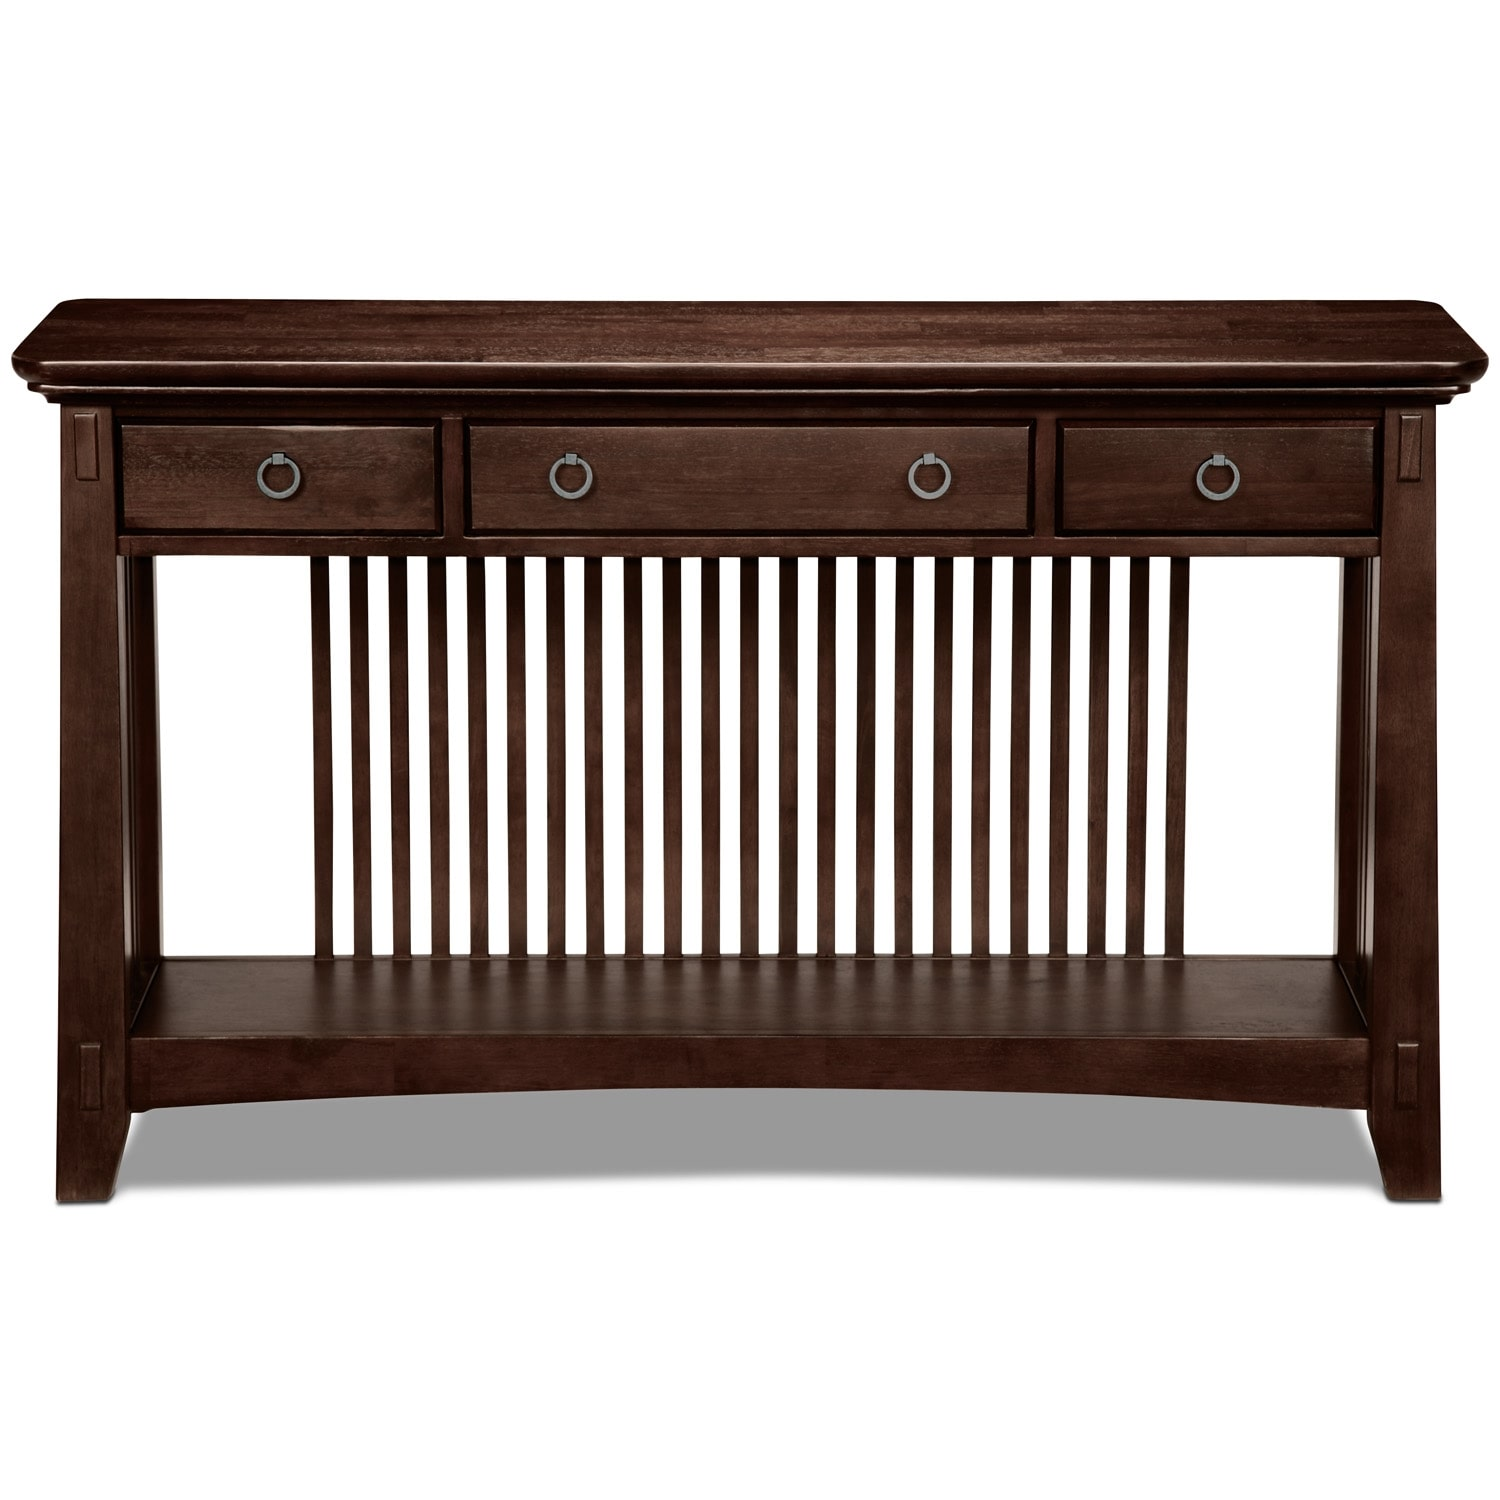 American Signature Furniture Arts And Crafts Collection: Arts & Crafts Sofa Table - Chocolate